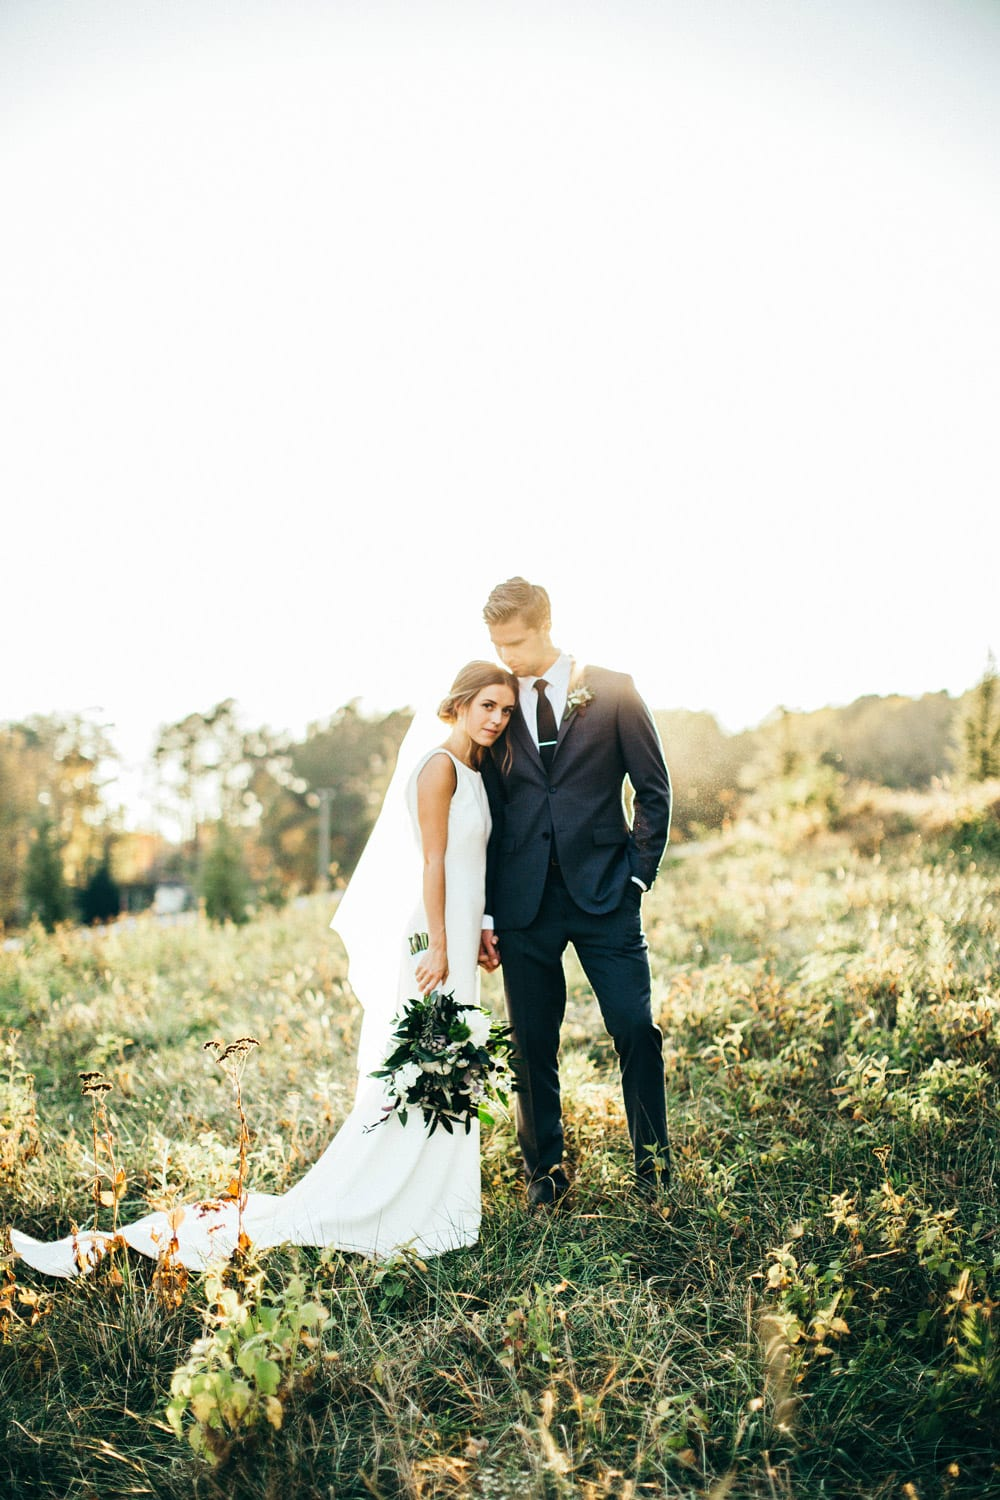 Bride and groom pose in pasture with flowers